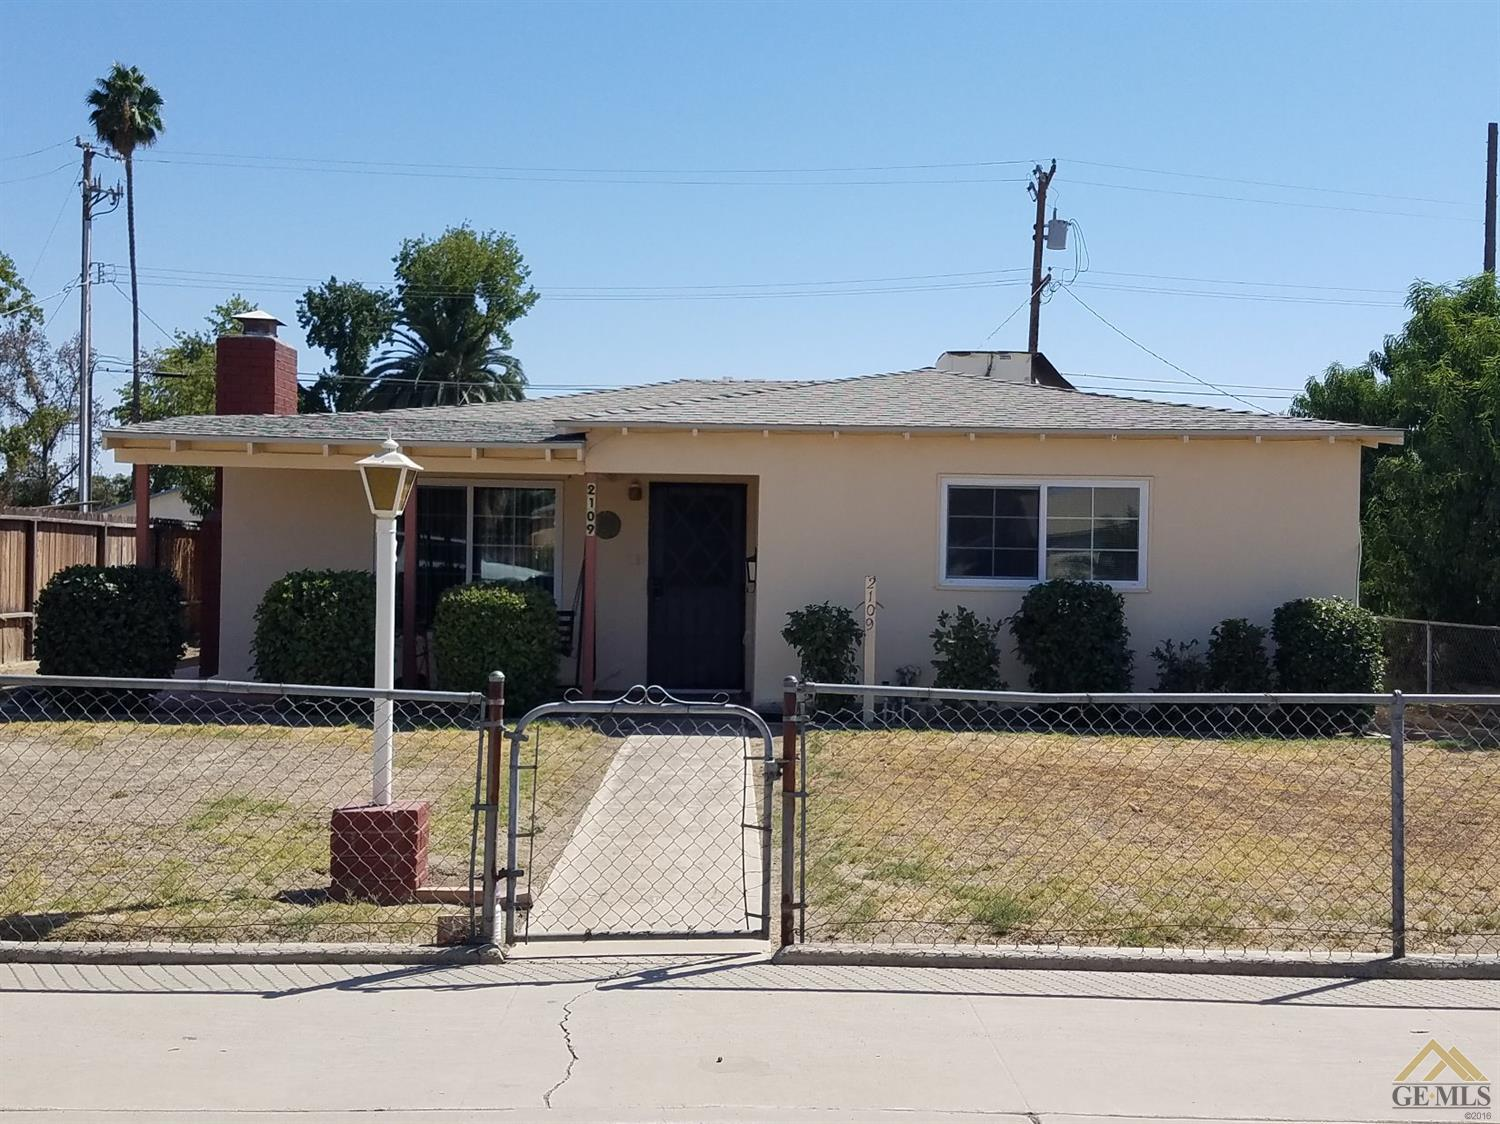 2109 2nd St, Wasco, CA 93280